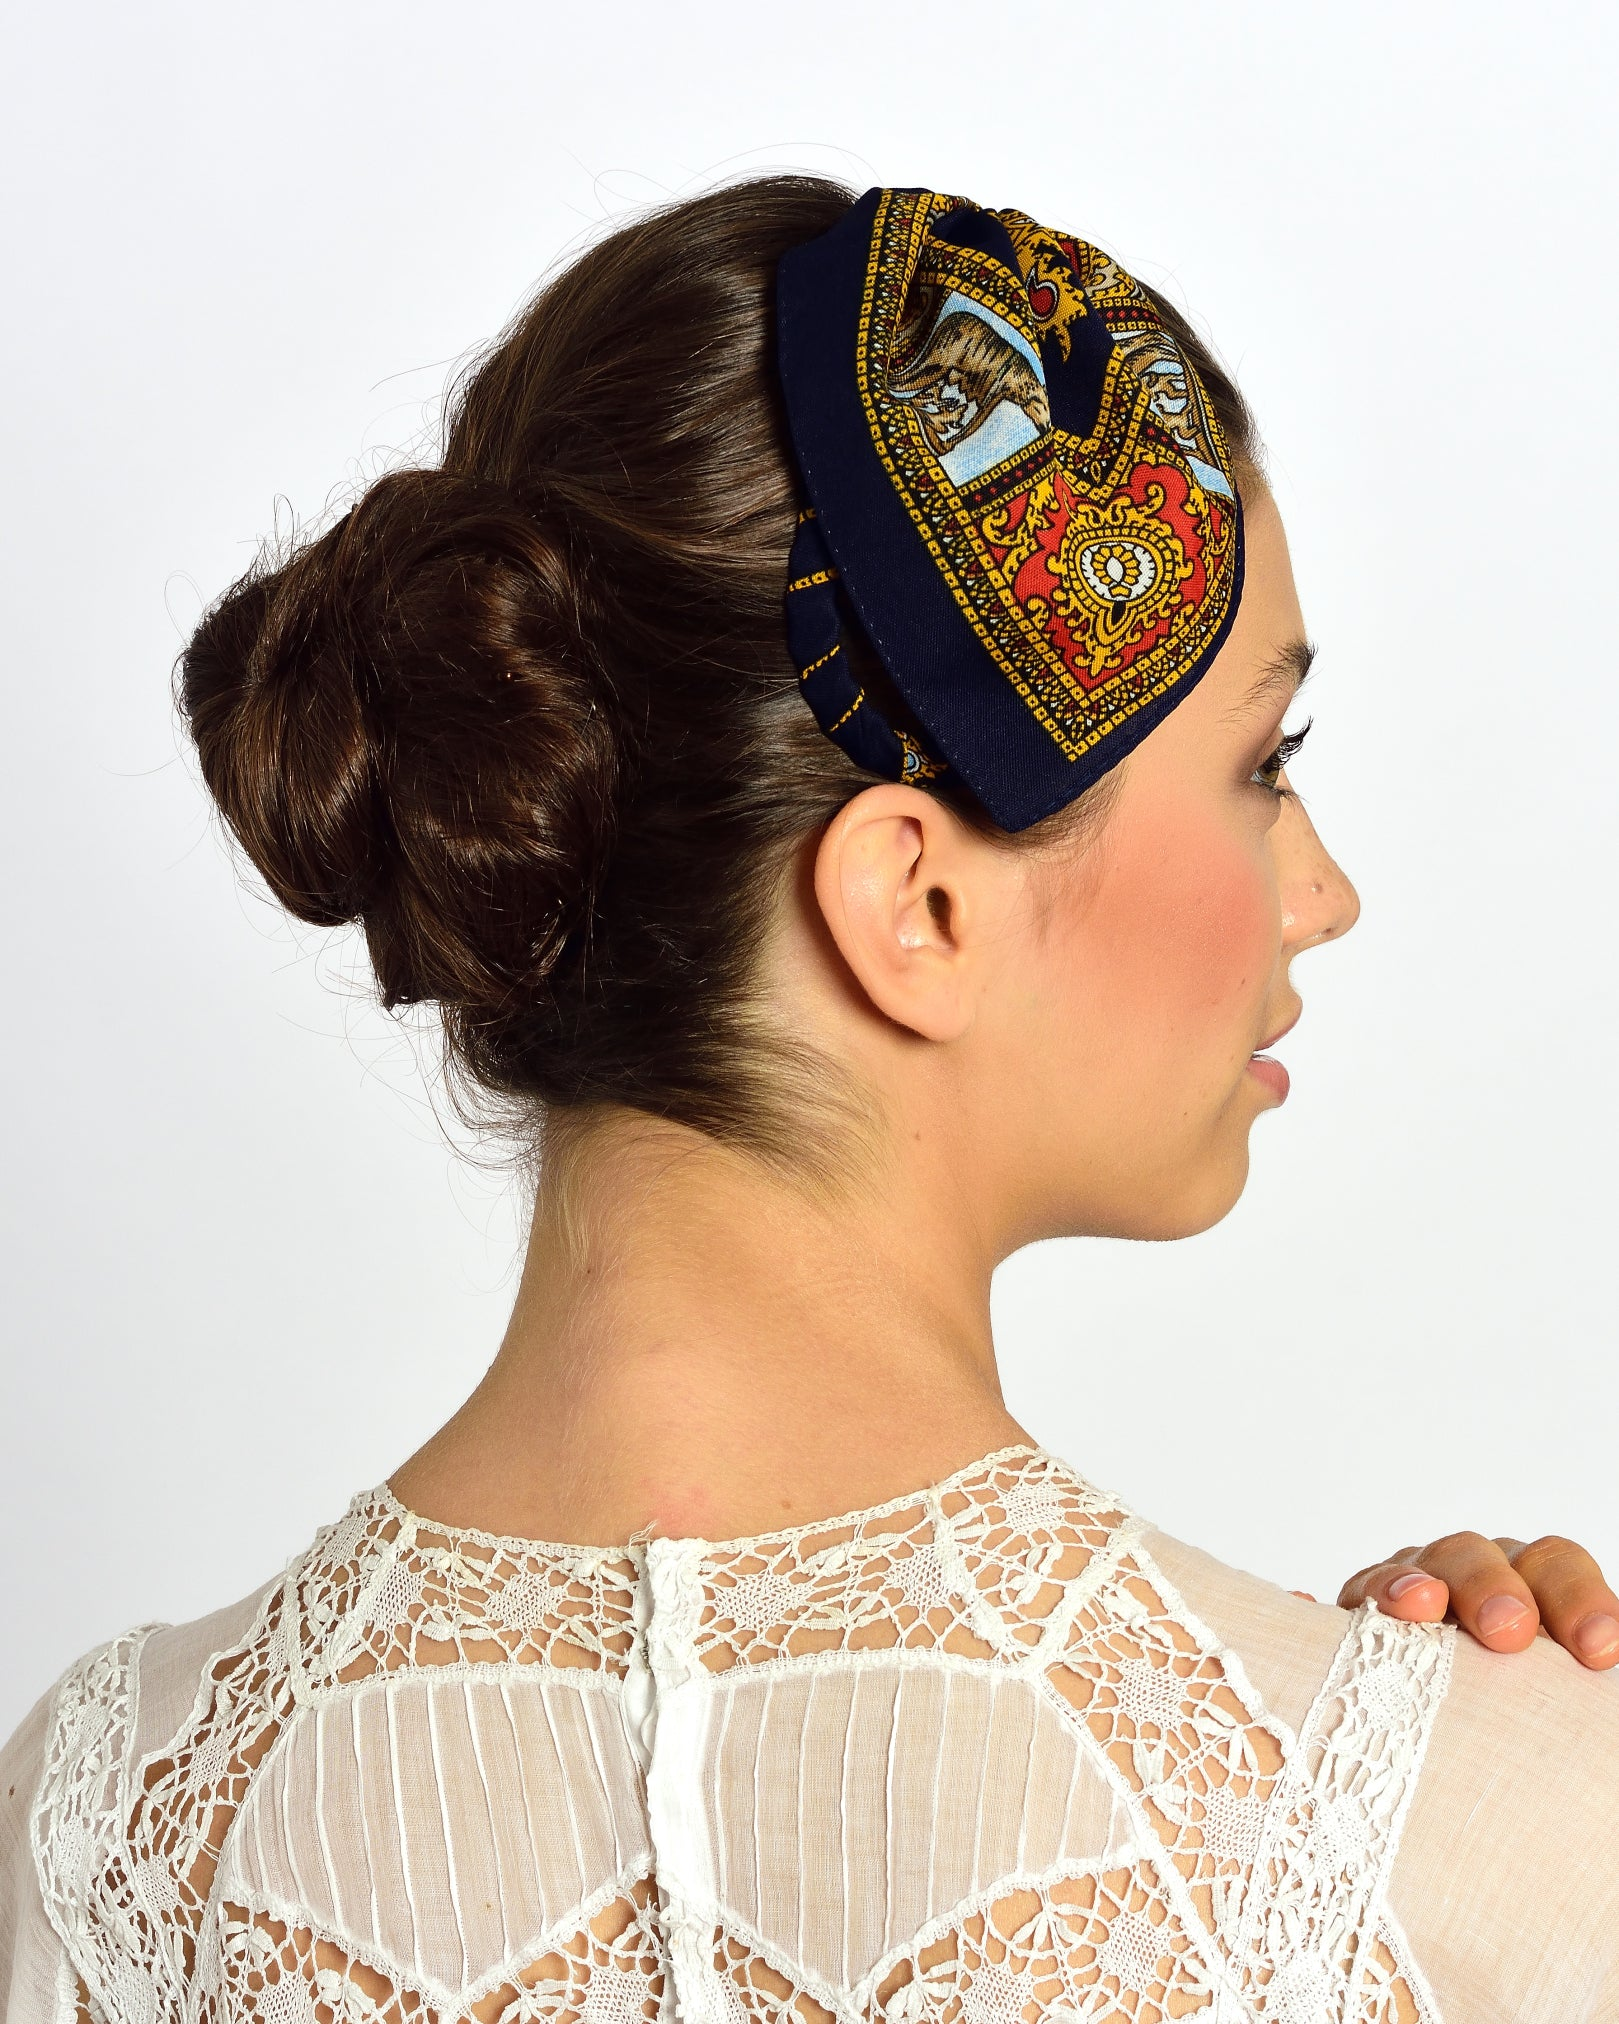 MISS GUMMO Navy Blue Foulard Headpiece